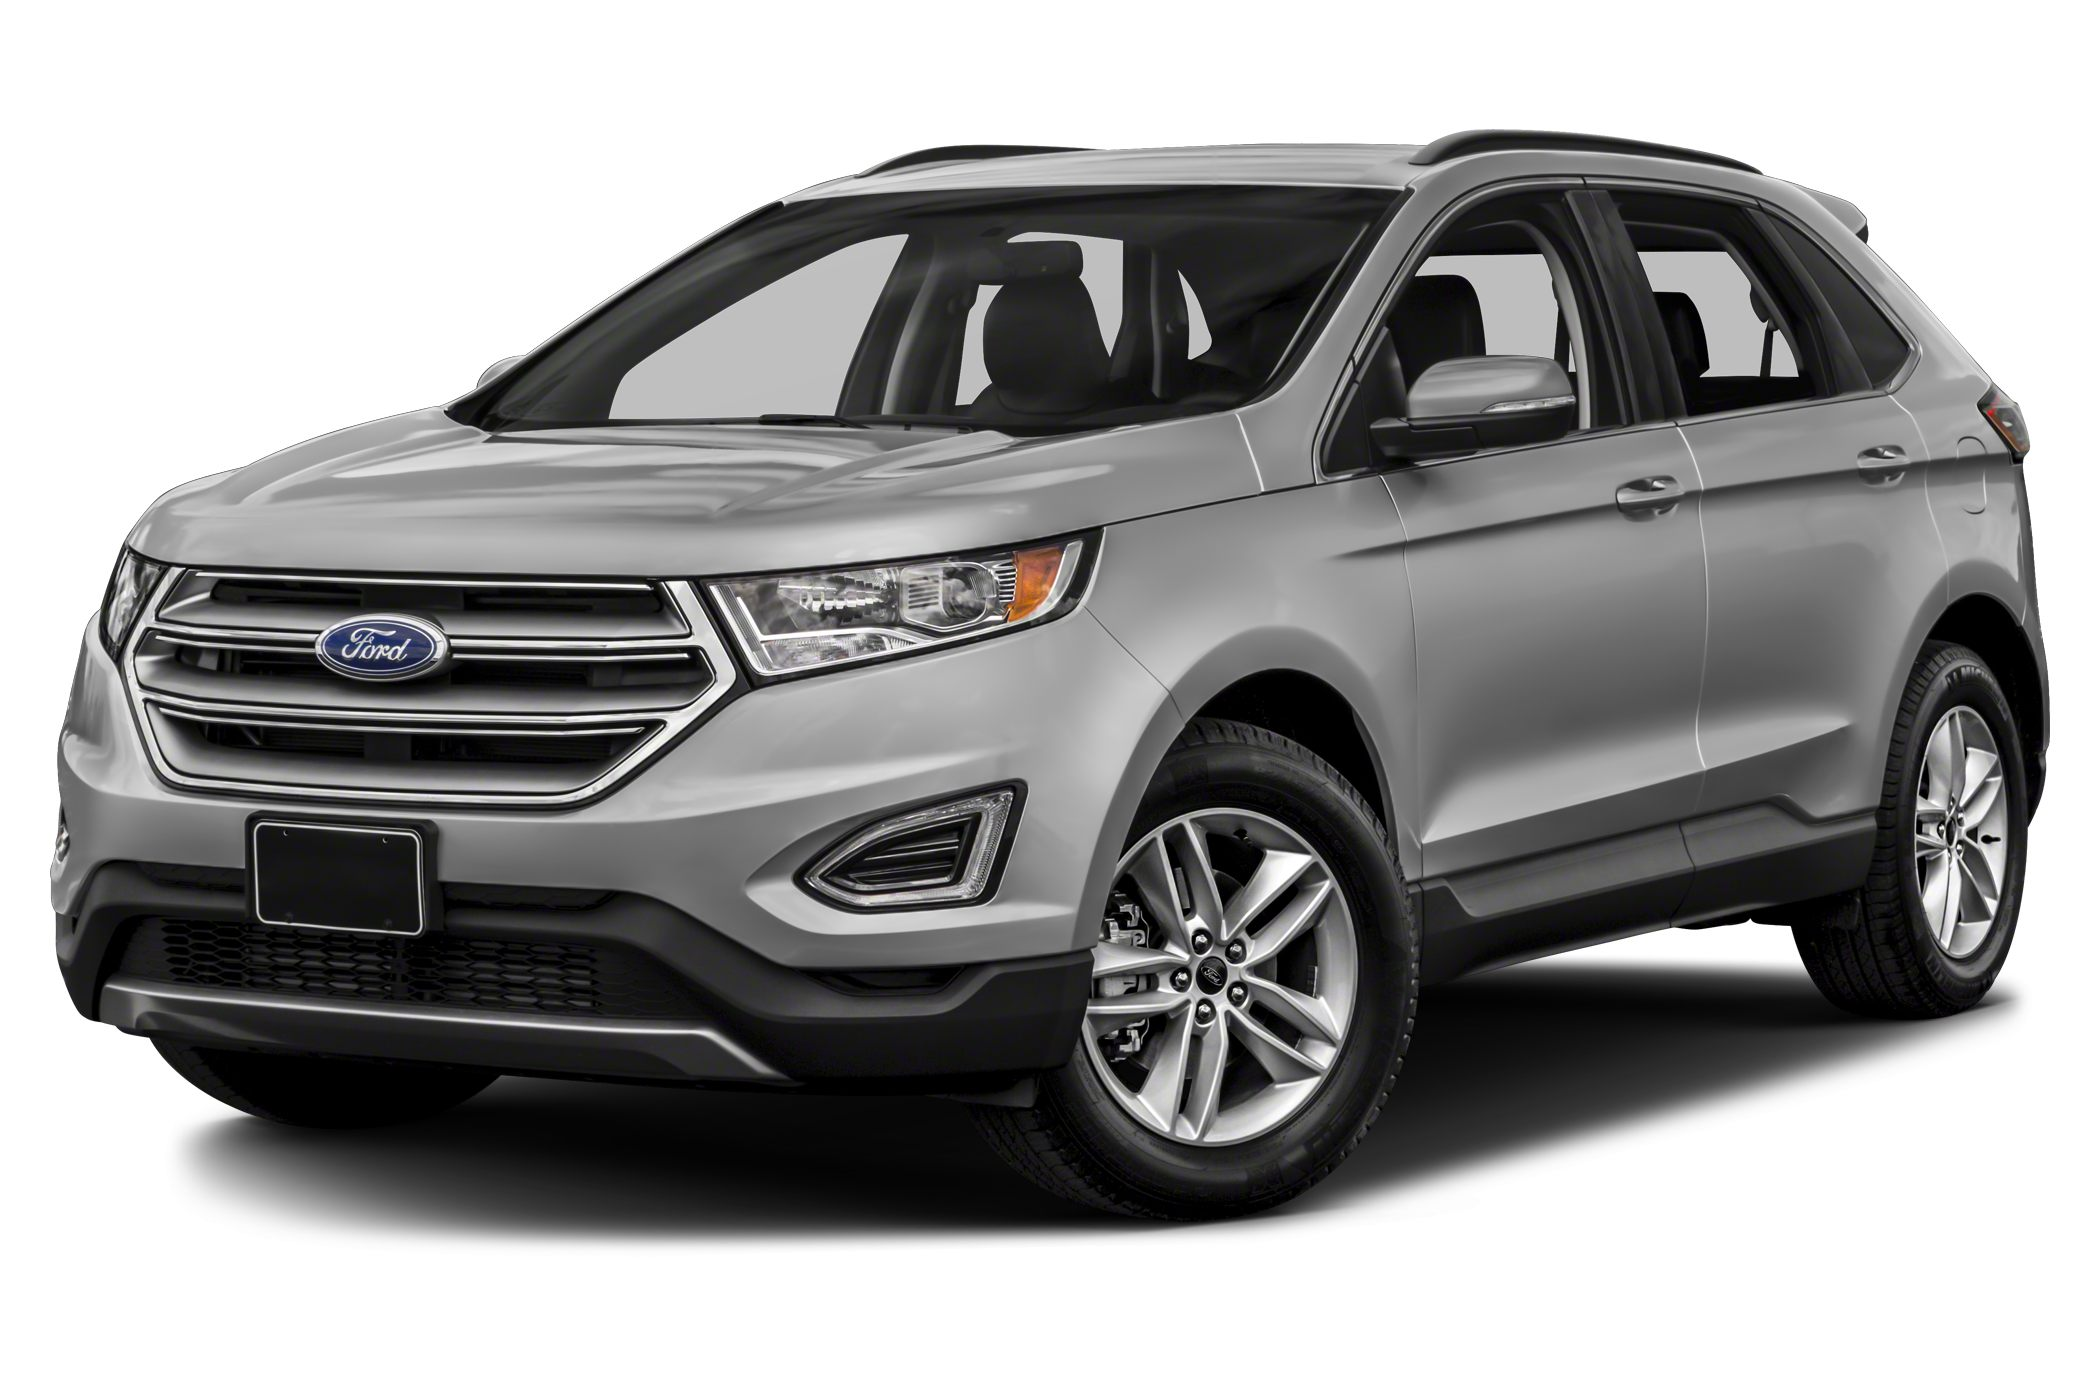 Used  Ford Edge D Suv Fwd Sel Ecoboost At Grote Automotive Near Fort Wayne